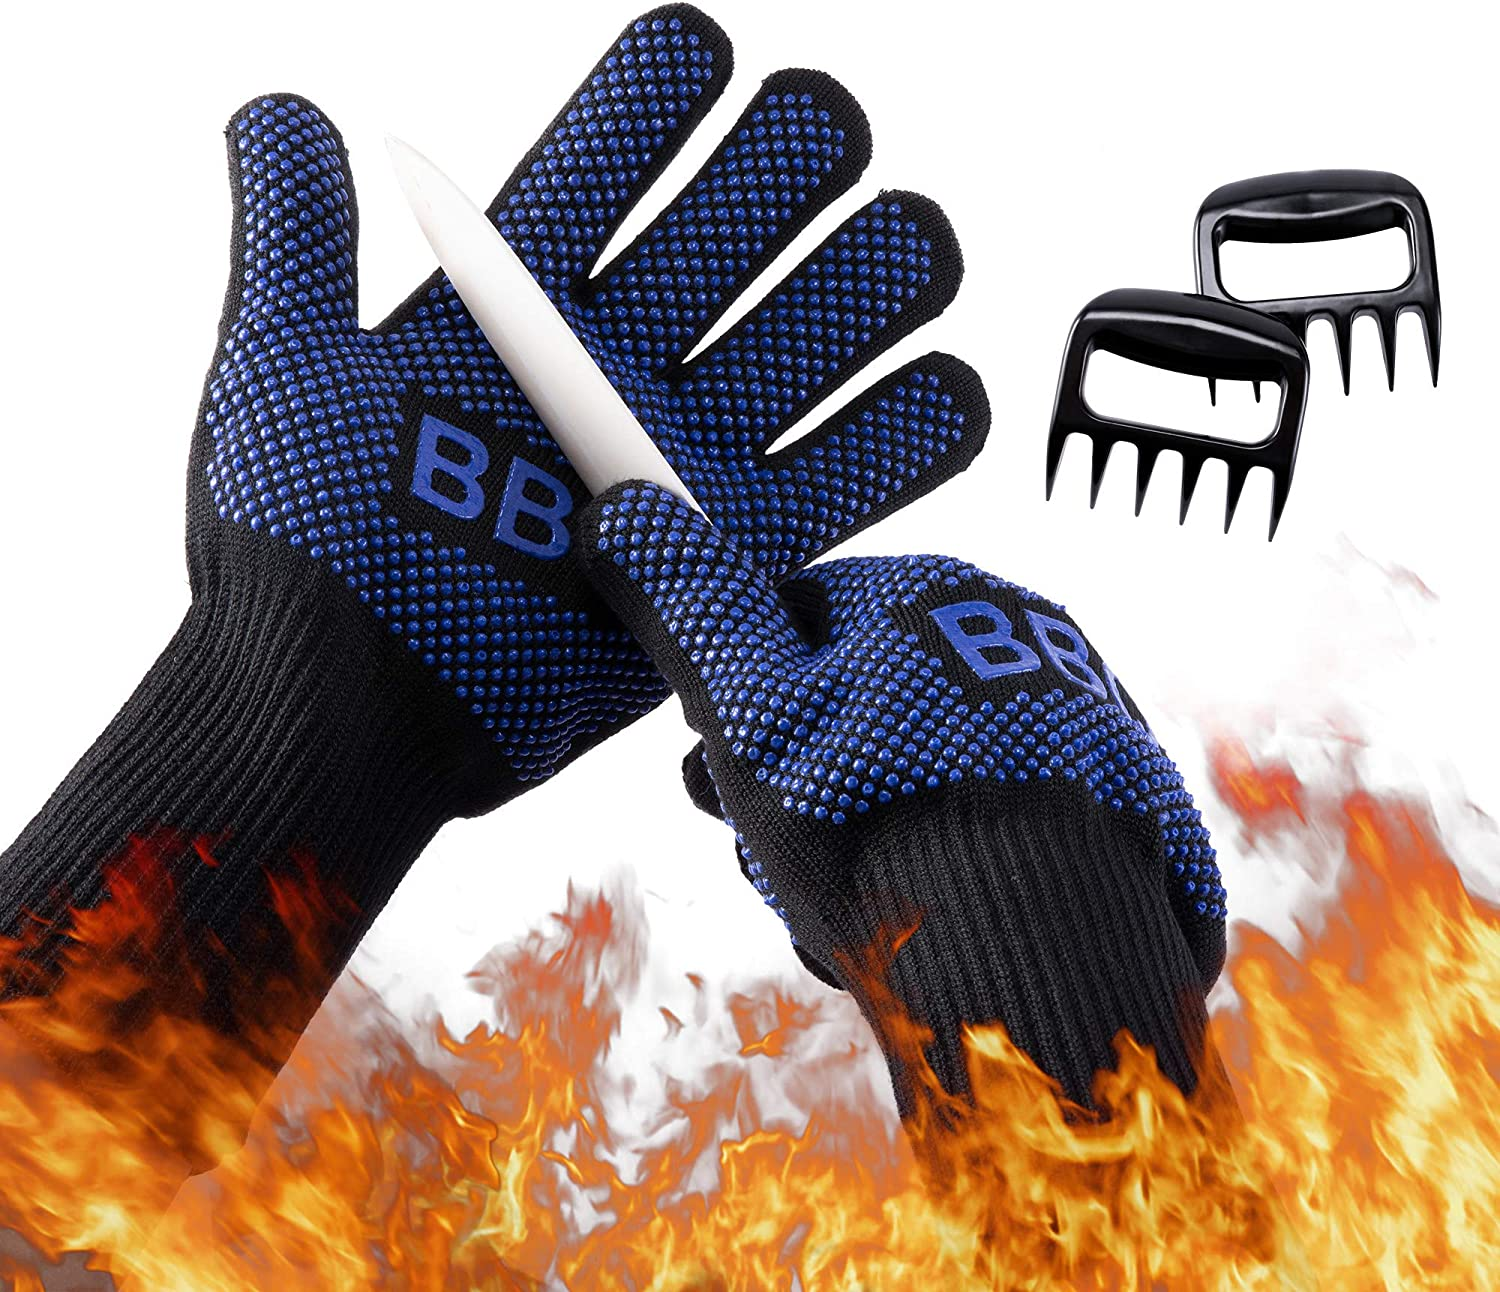 Goodking BBQ Gloves 1472 °F Heat Resistant Grill Gloves, Food Grade Kitchen Oven Gloves, Silicone Non-Slip Cooking Hot Glove with Meat Claws for Grilling, Welding, Baking, Barbecue - Blue